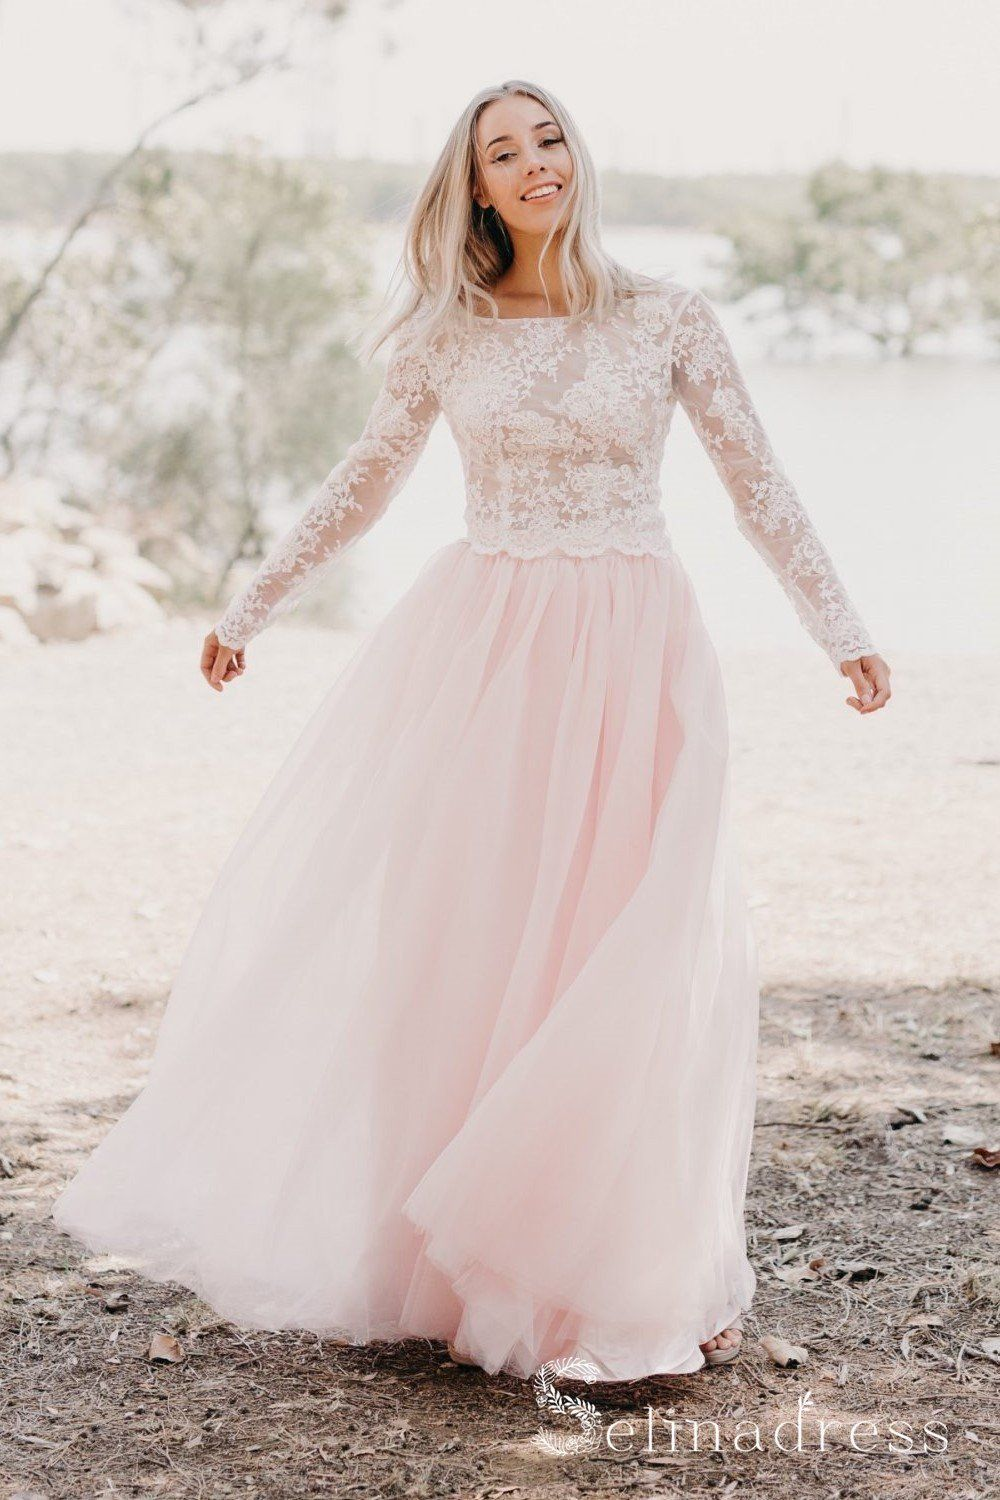 Blushing Pink Two Pieces Country Wedding Dresses Long Sleeve Lace Wedding Dress Sew054 In 2021 Long Sleeve Wedding Dress Lace Long Wedding Dresses Prom Dresses Long With Sleeves [ 1500 x 1000 Pixel ]